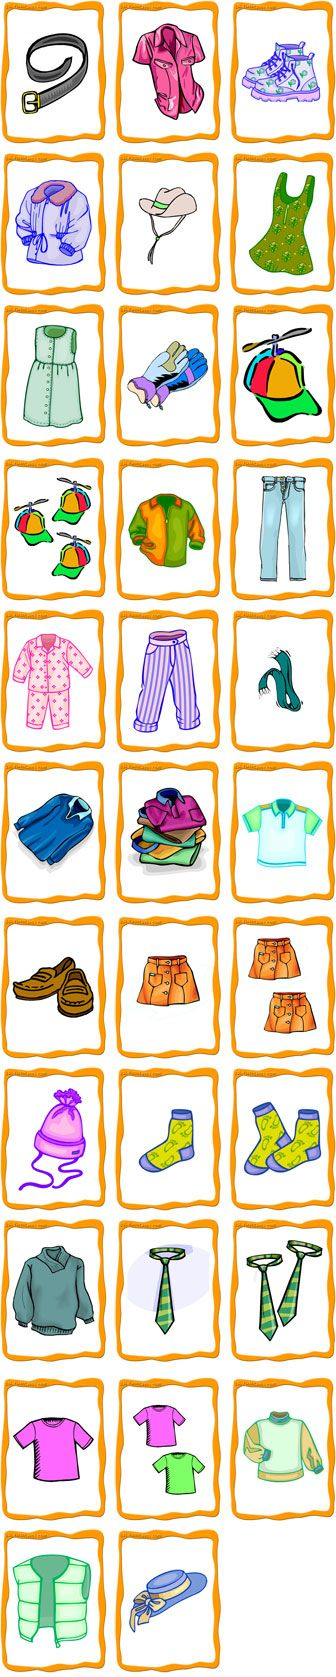 Clothing Items in Spanish: List, Prices and Descriptions ...